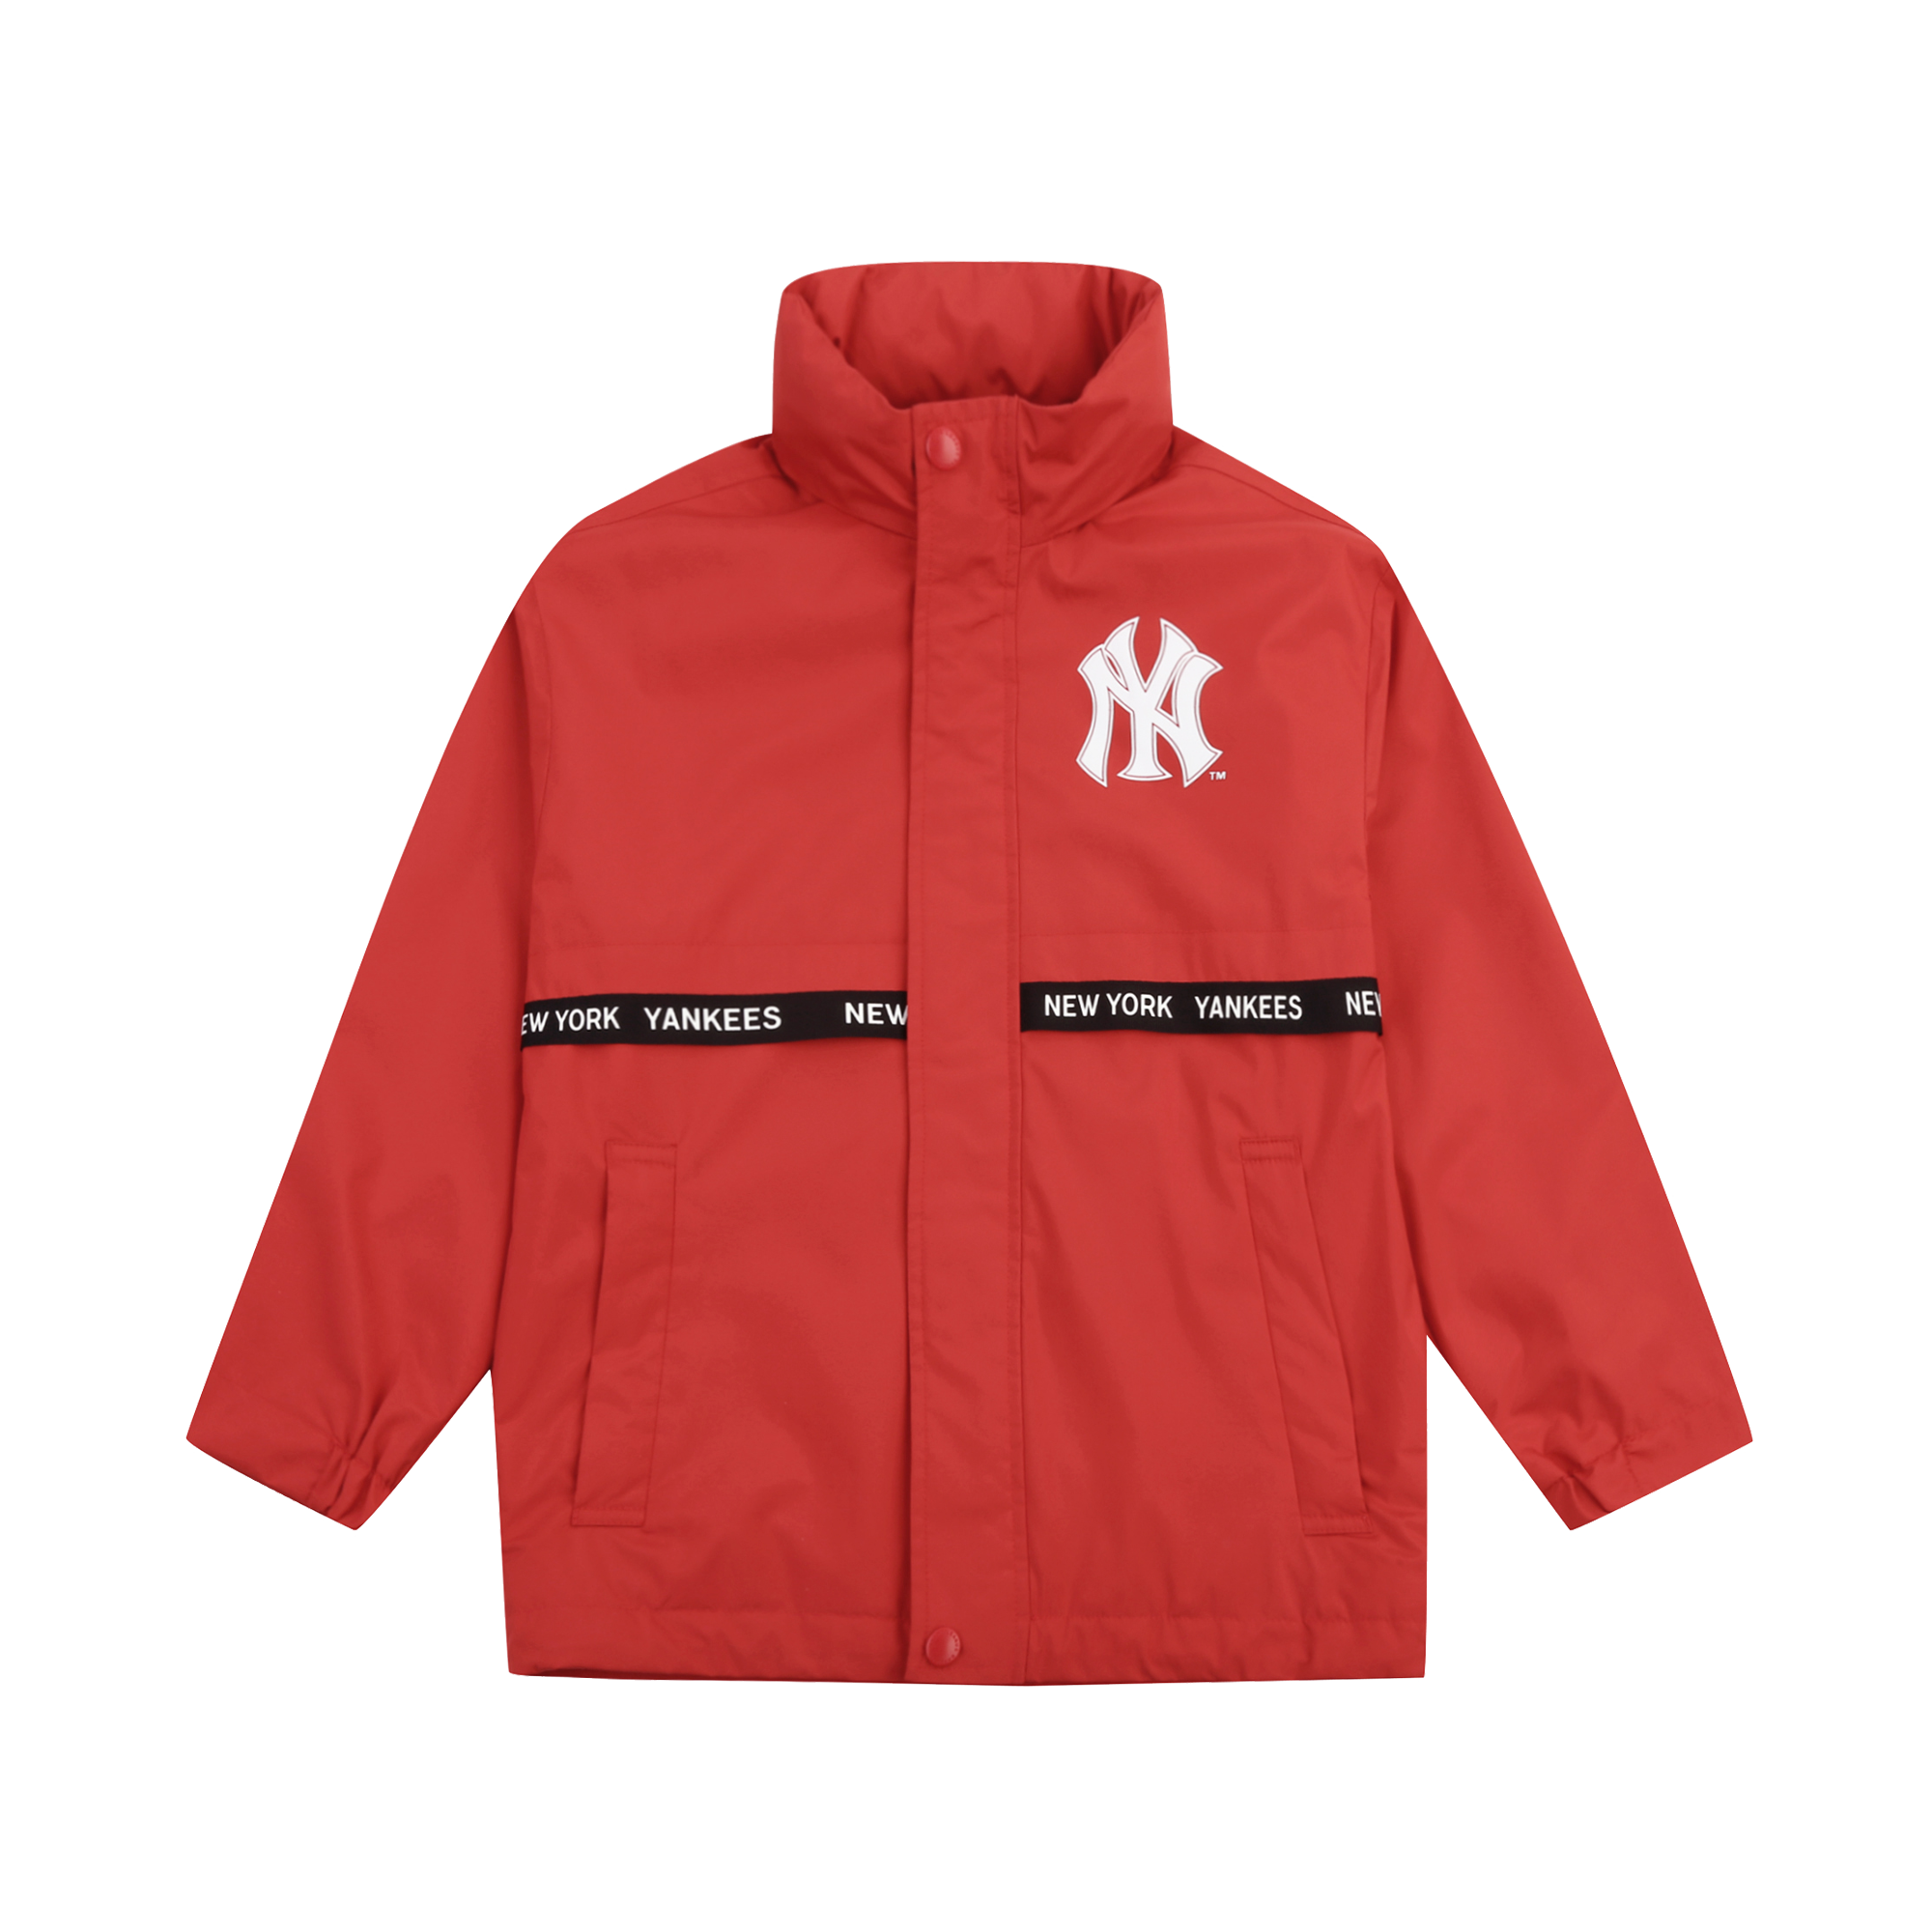 NEW YORK YANKEES STAMP TAPE JACKET